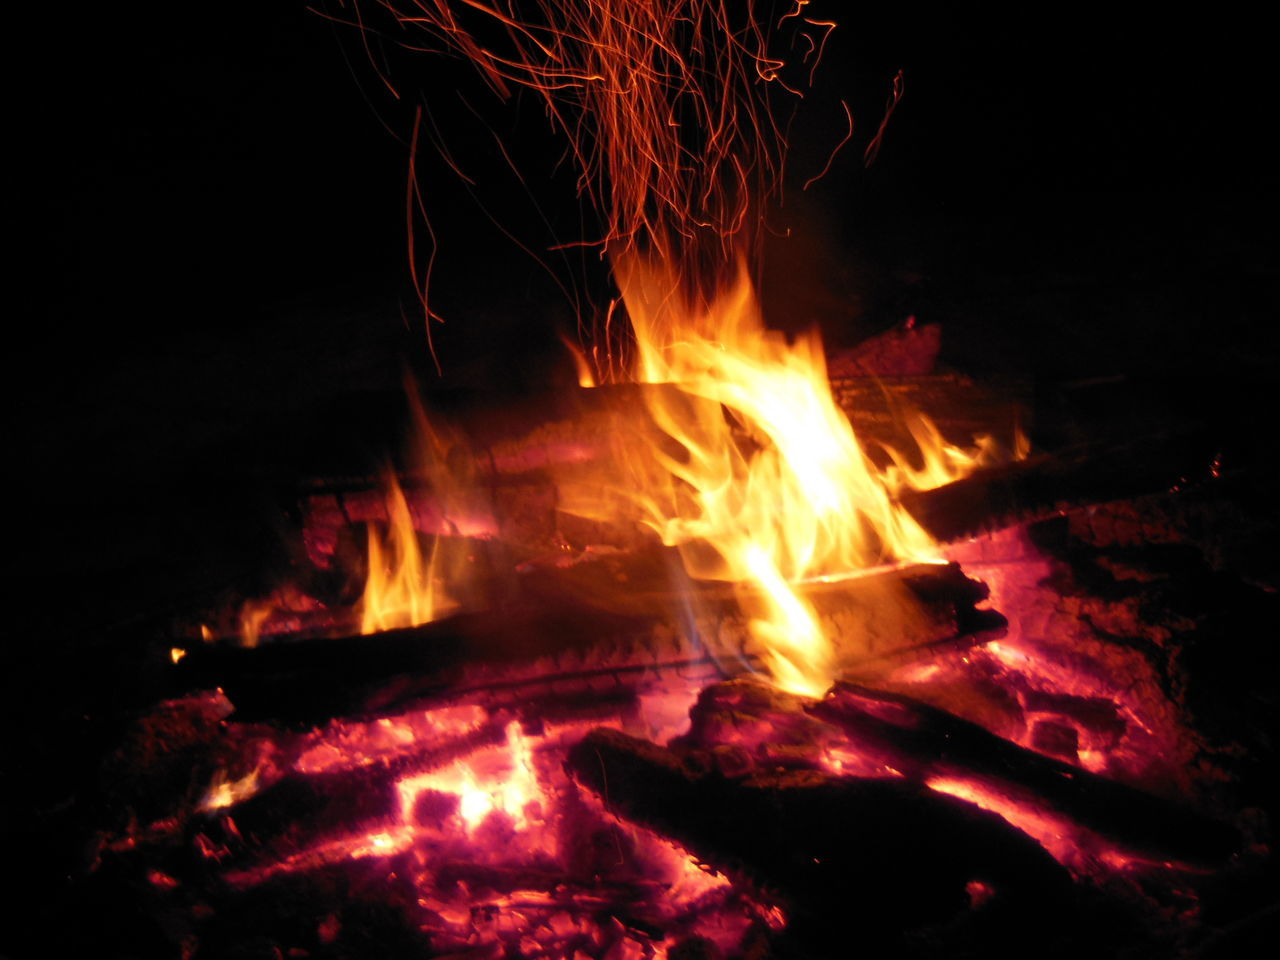 burning, flame, night, heat - temperature, glowing, no people, bonfire, outdoors, close-up, motion